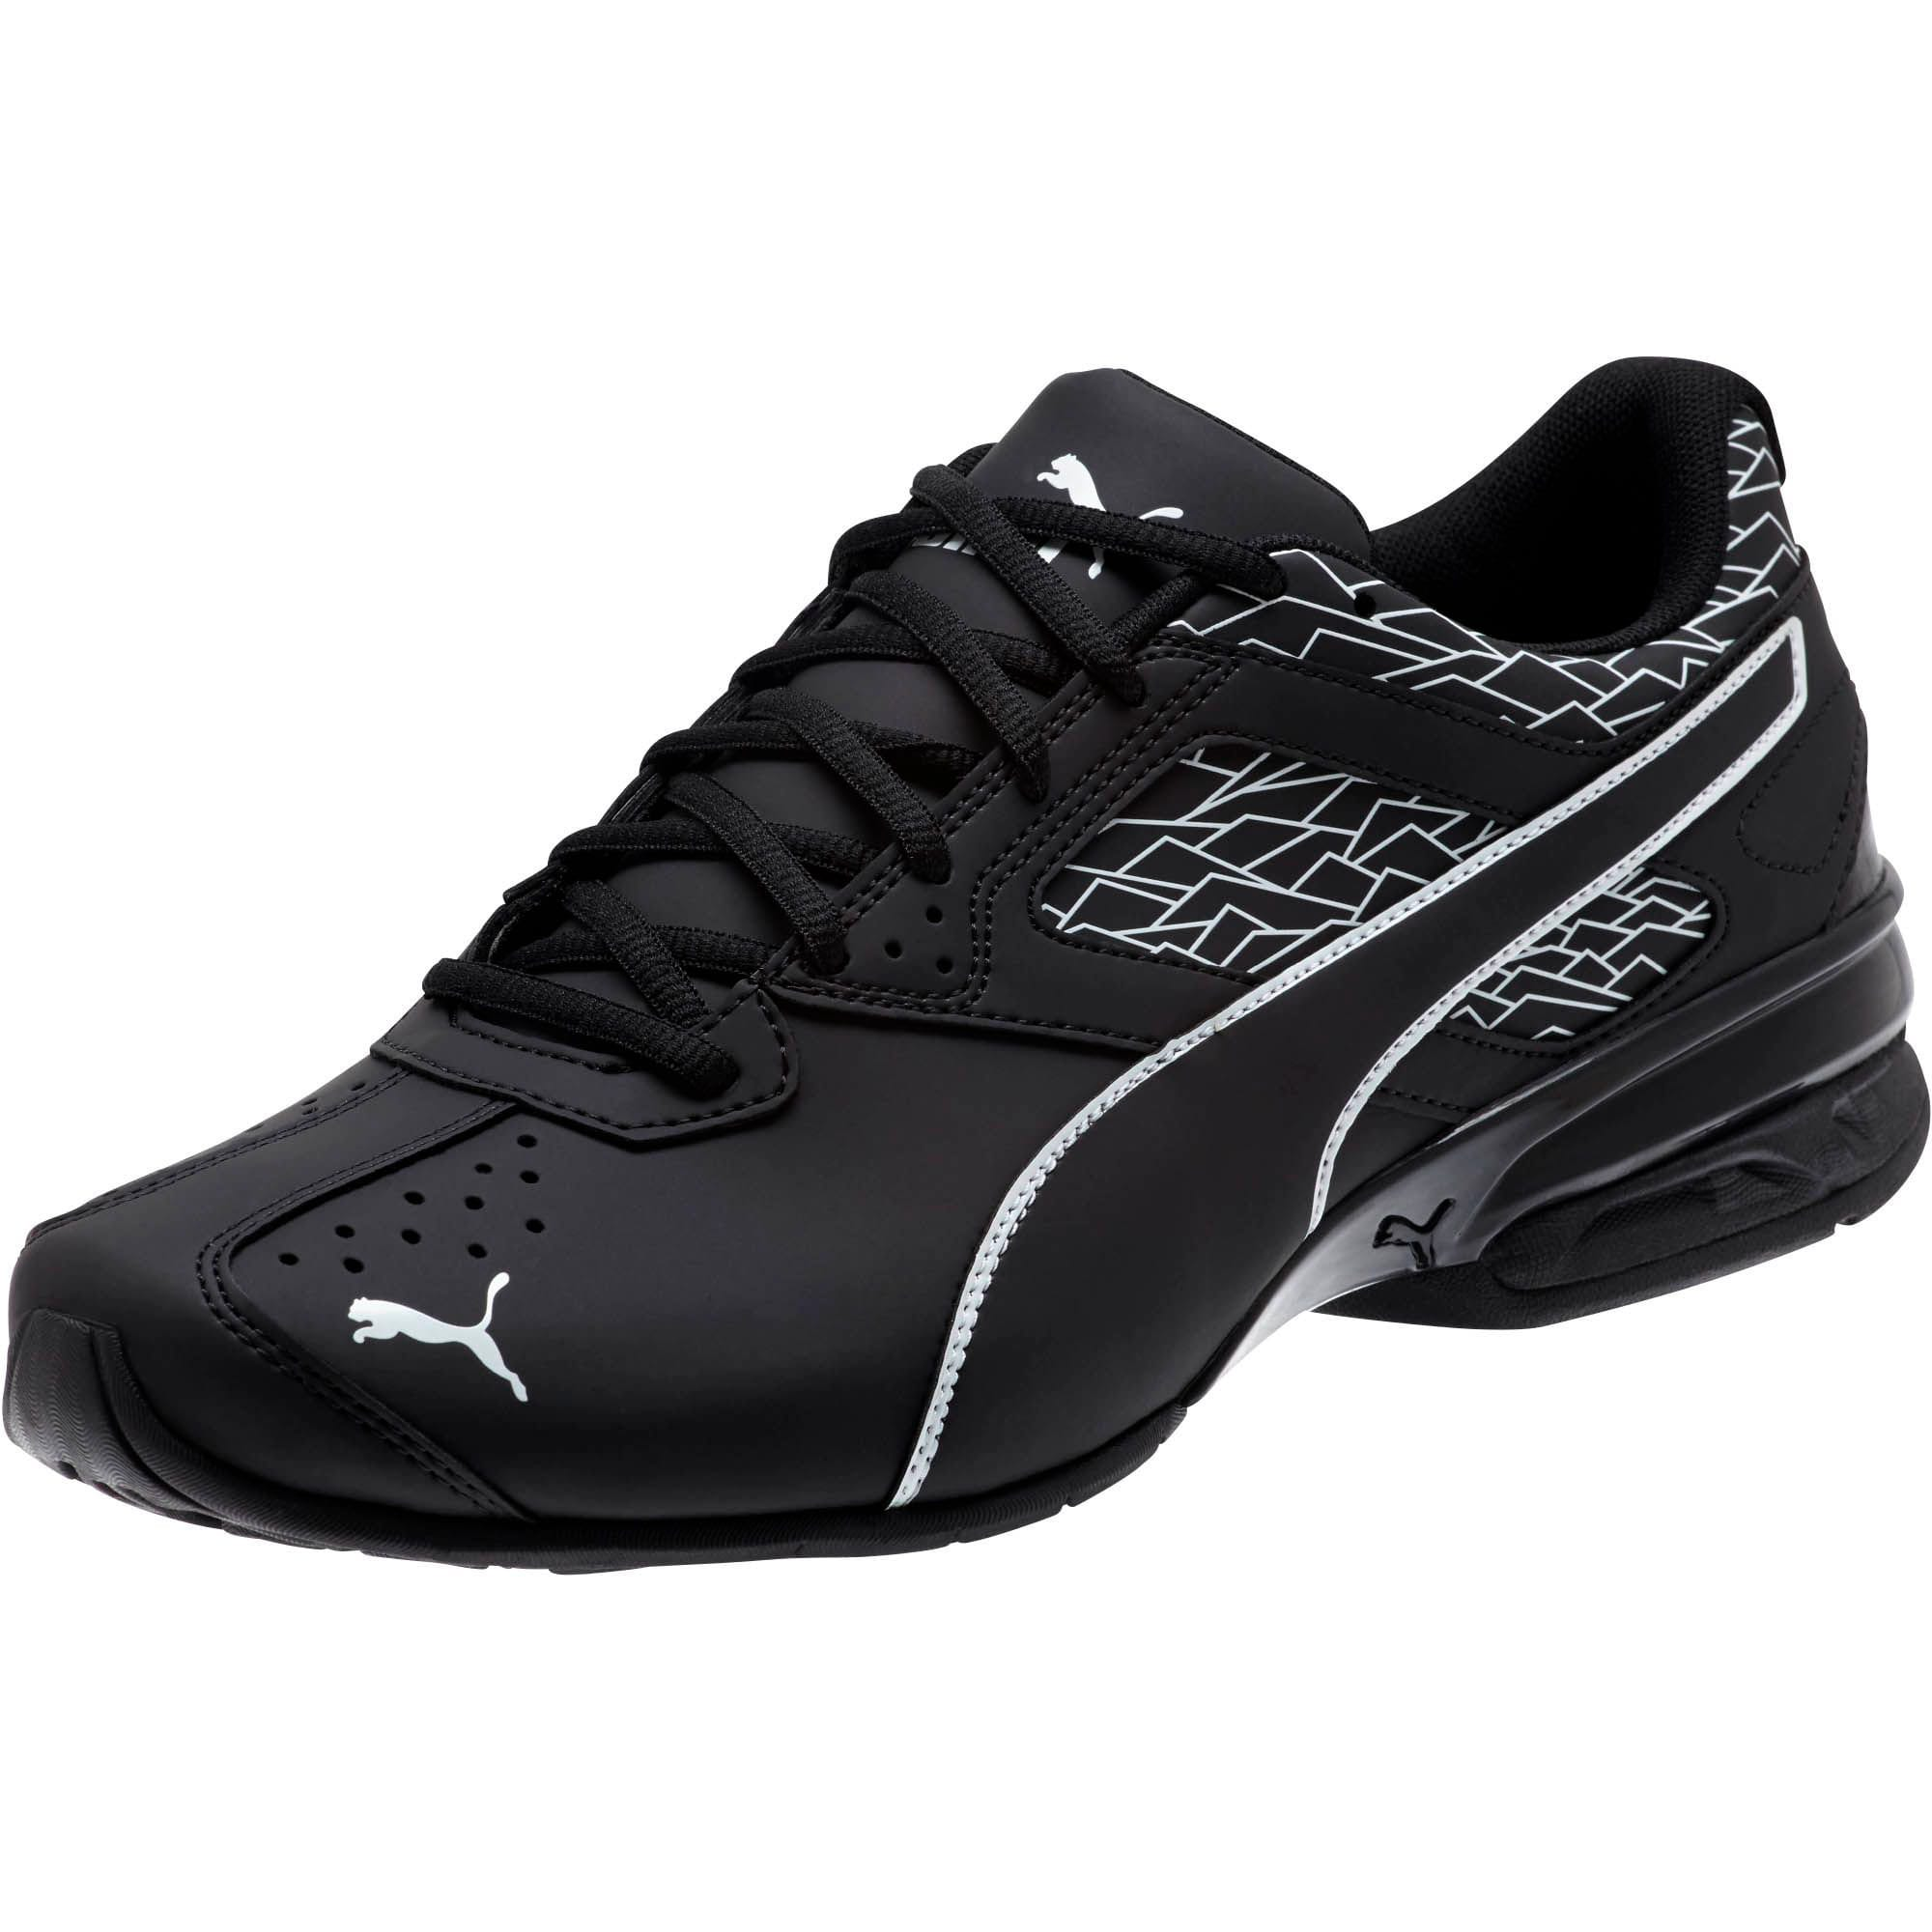 Thumbnail 1 of Tazon 6 Fracture FM Men's Sneakers, Puma Black-Puma Black, medium